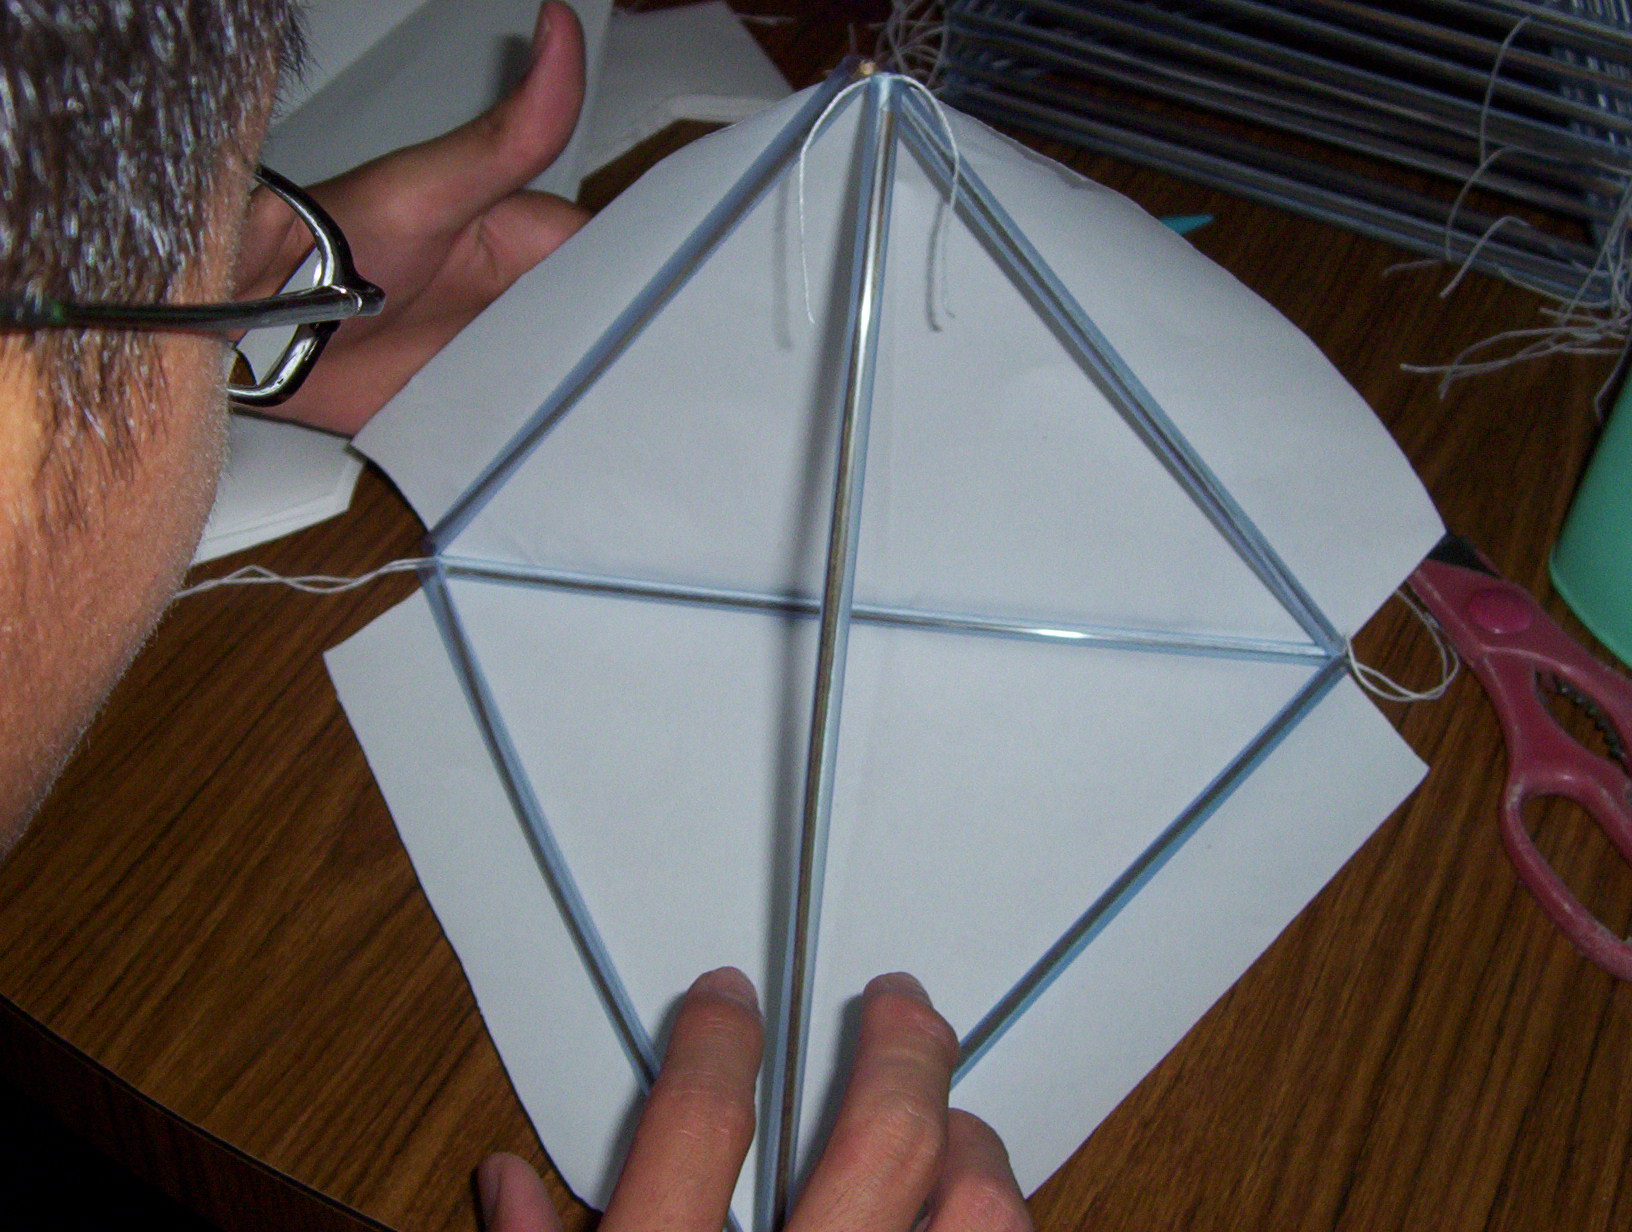 Tetrahedral kites 9 glue the mahjong paper onto the pyramid frame next attach the cells together to form a 4 16 64 or 256 tetrahedral kite maxwellsz